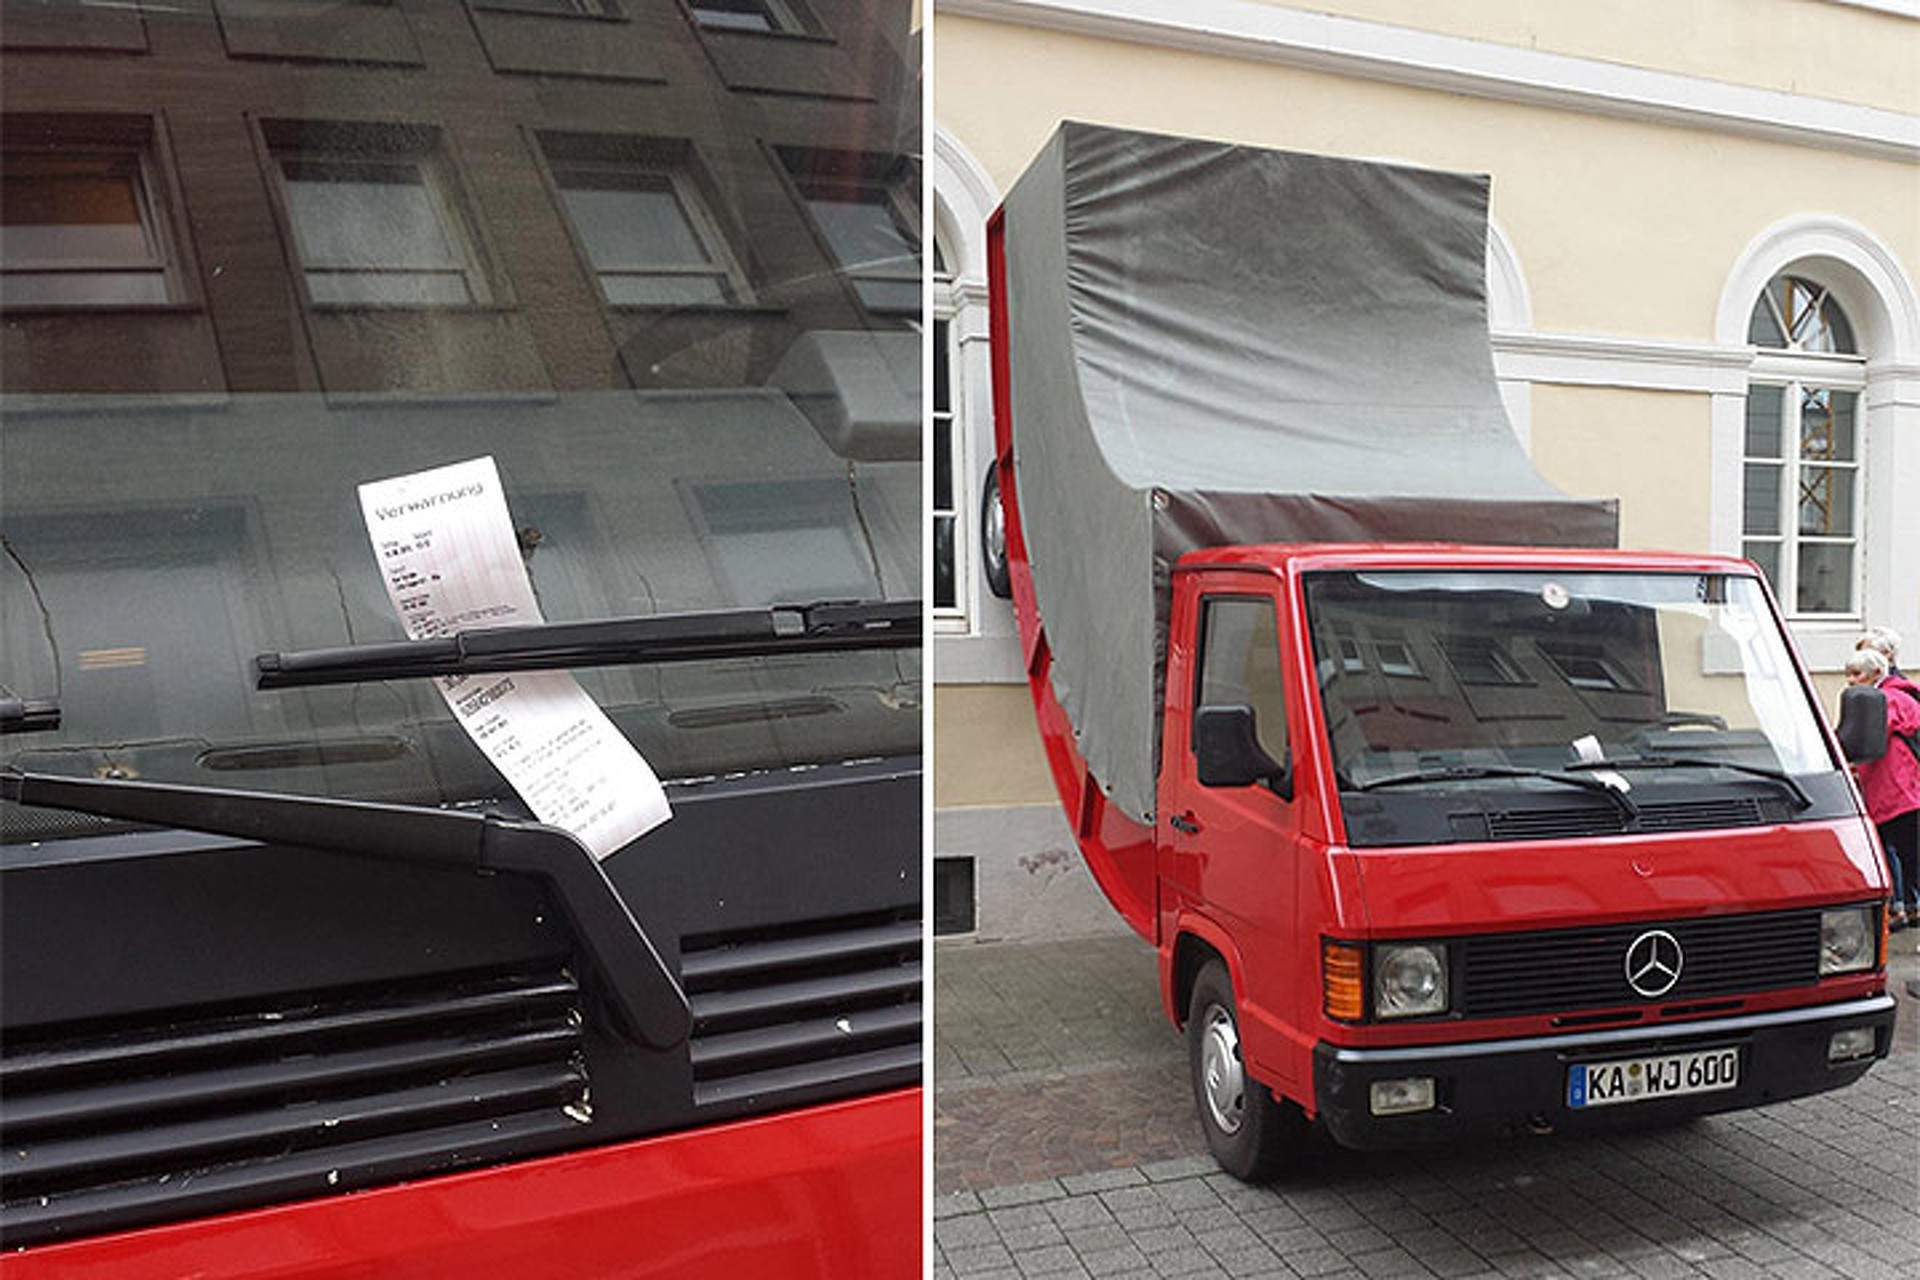 Police Issue Parking Ticket to a Mercedes Art Exhibit